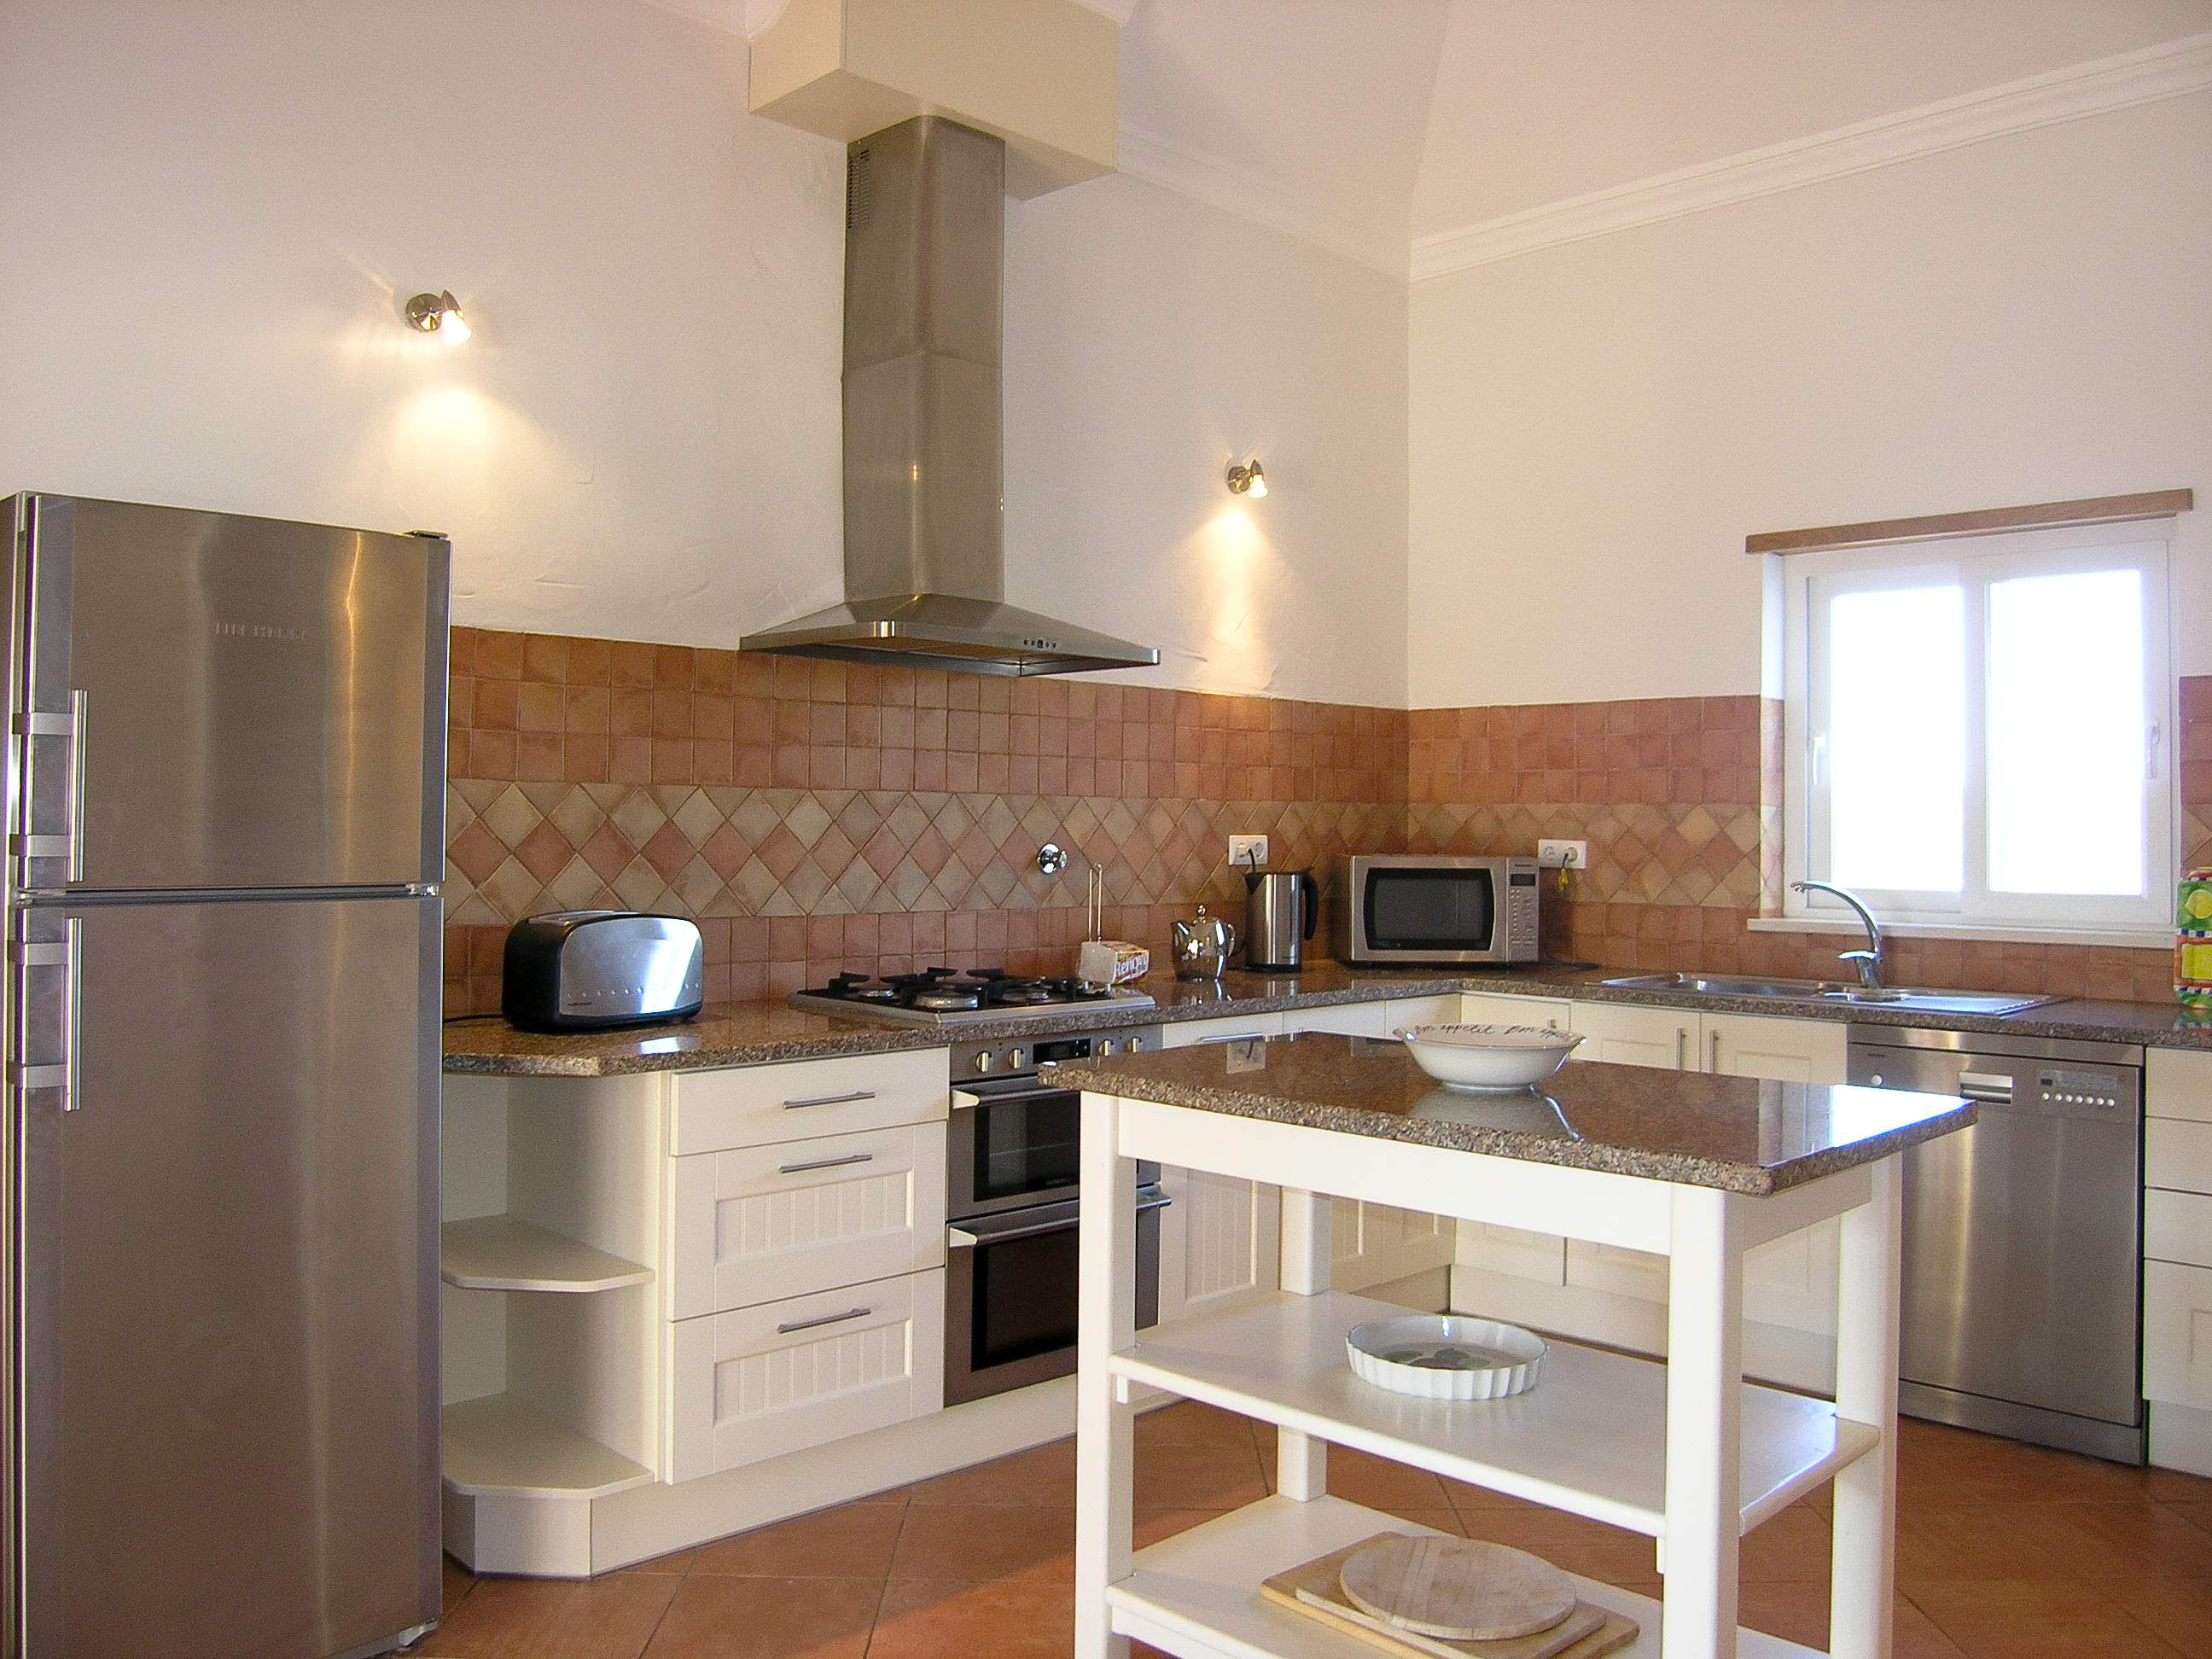 Martinhal Luxury Villa No.10, Three Bedroom Villa, 3 bedroom villa in Martinhal Sagres, Algarve Photo #7